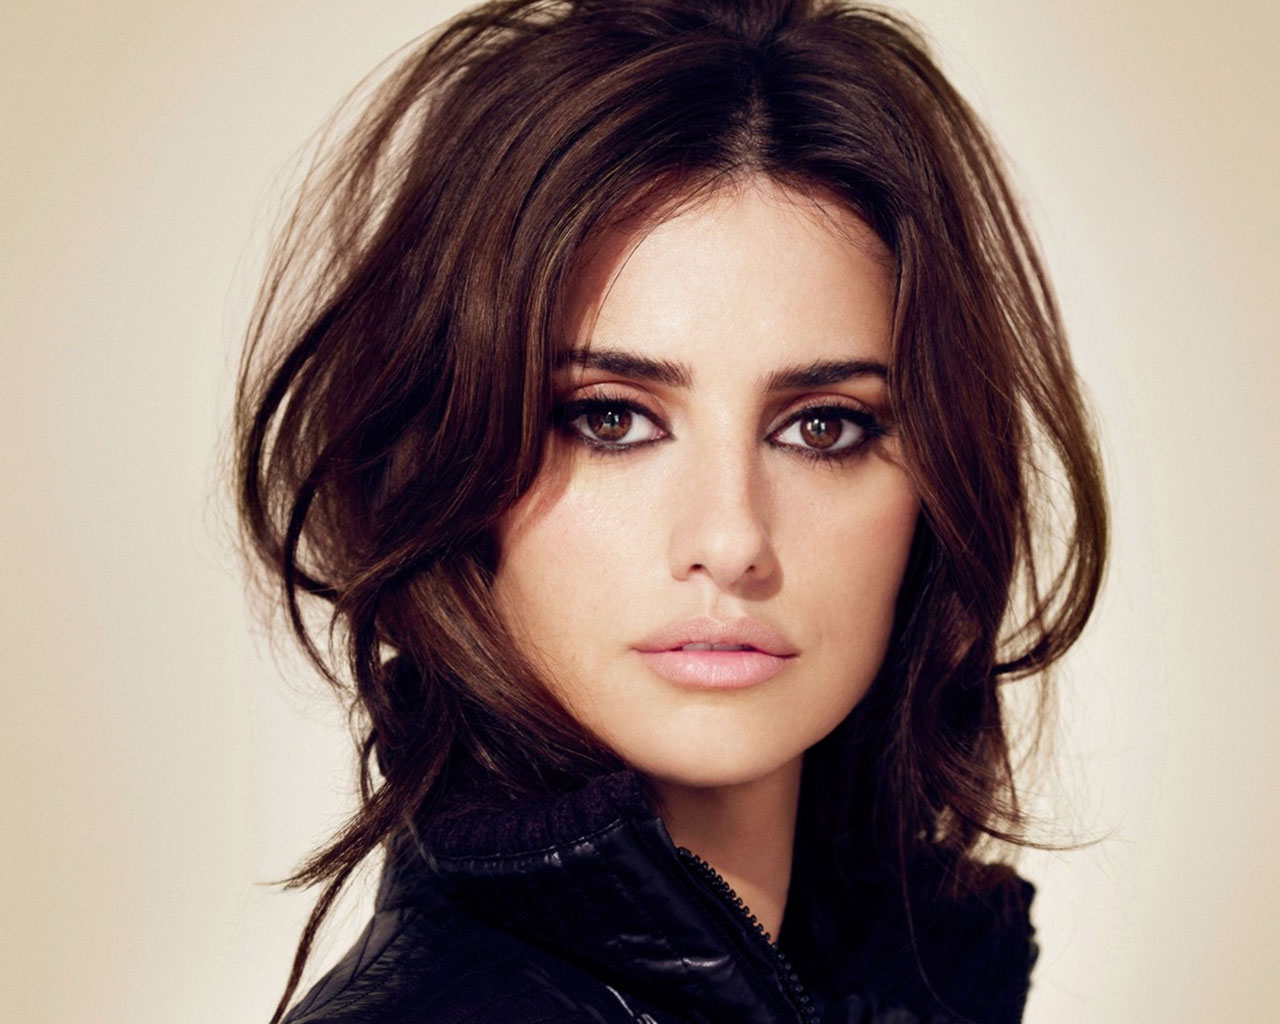 Beautiful Penelope Cruz 1 37069 HD Images Wallpapers